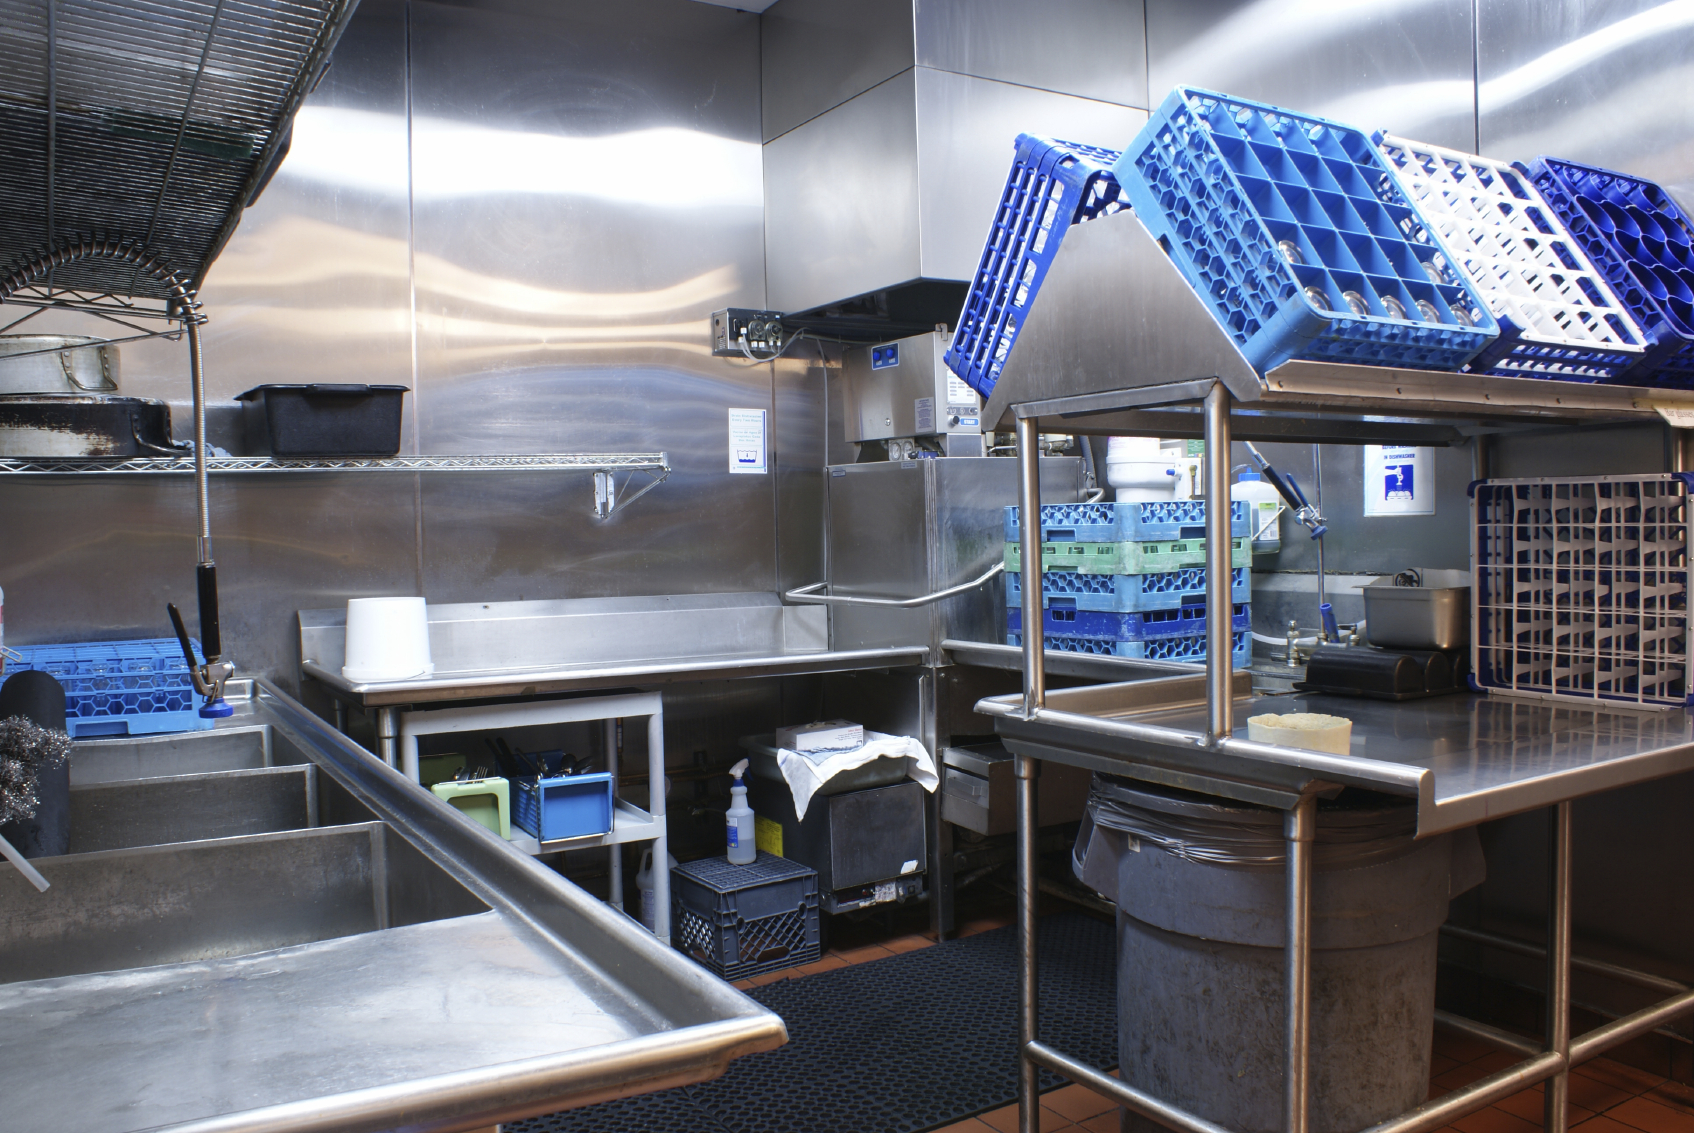 Commercial Kitchen Equipment Images